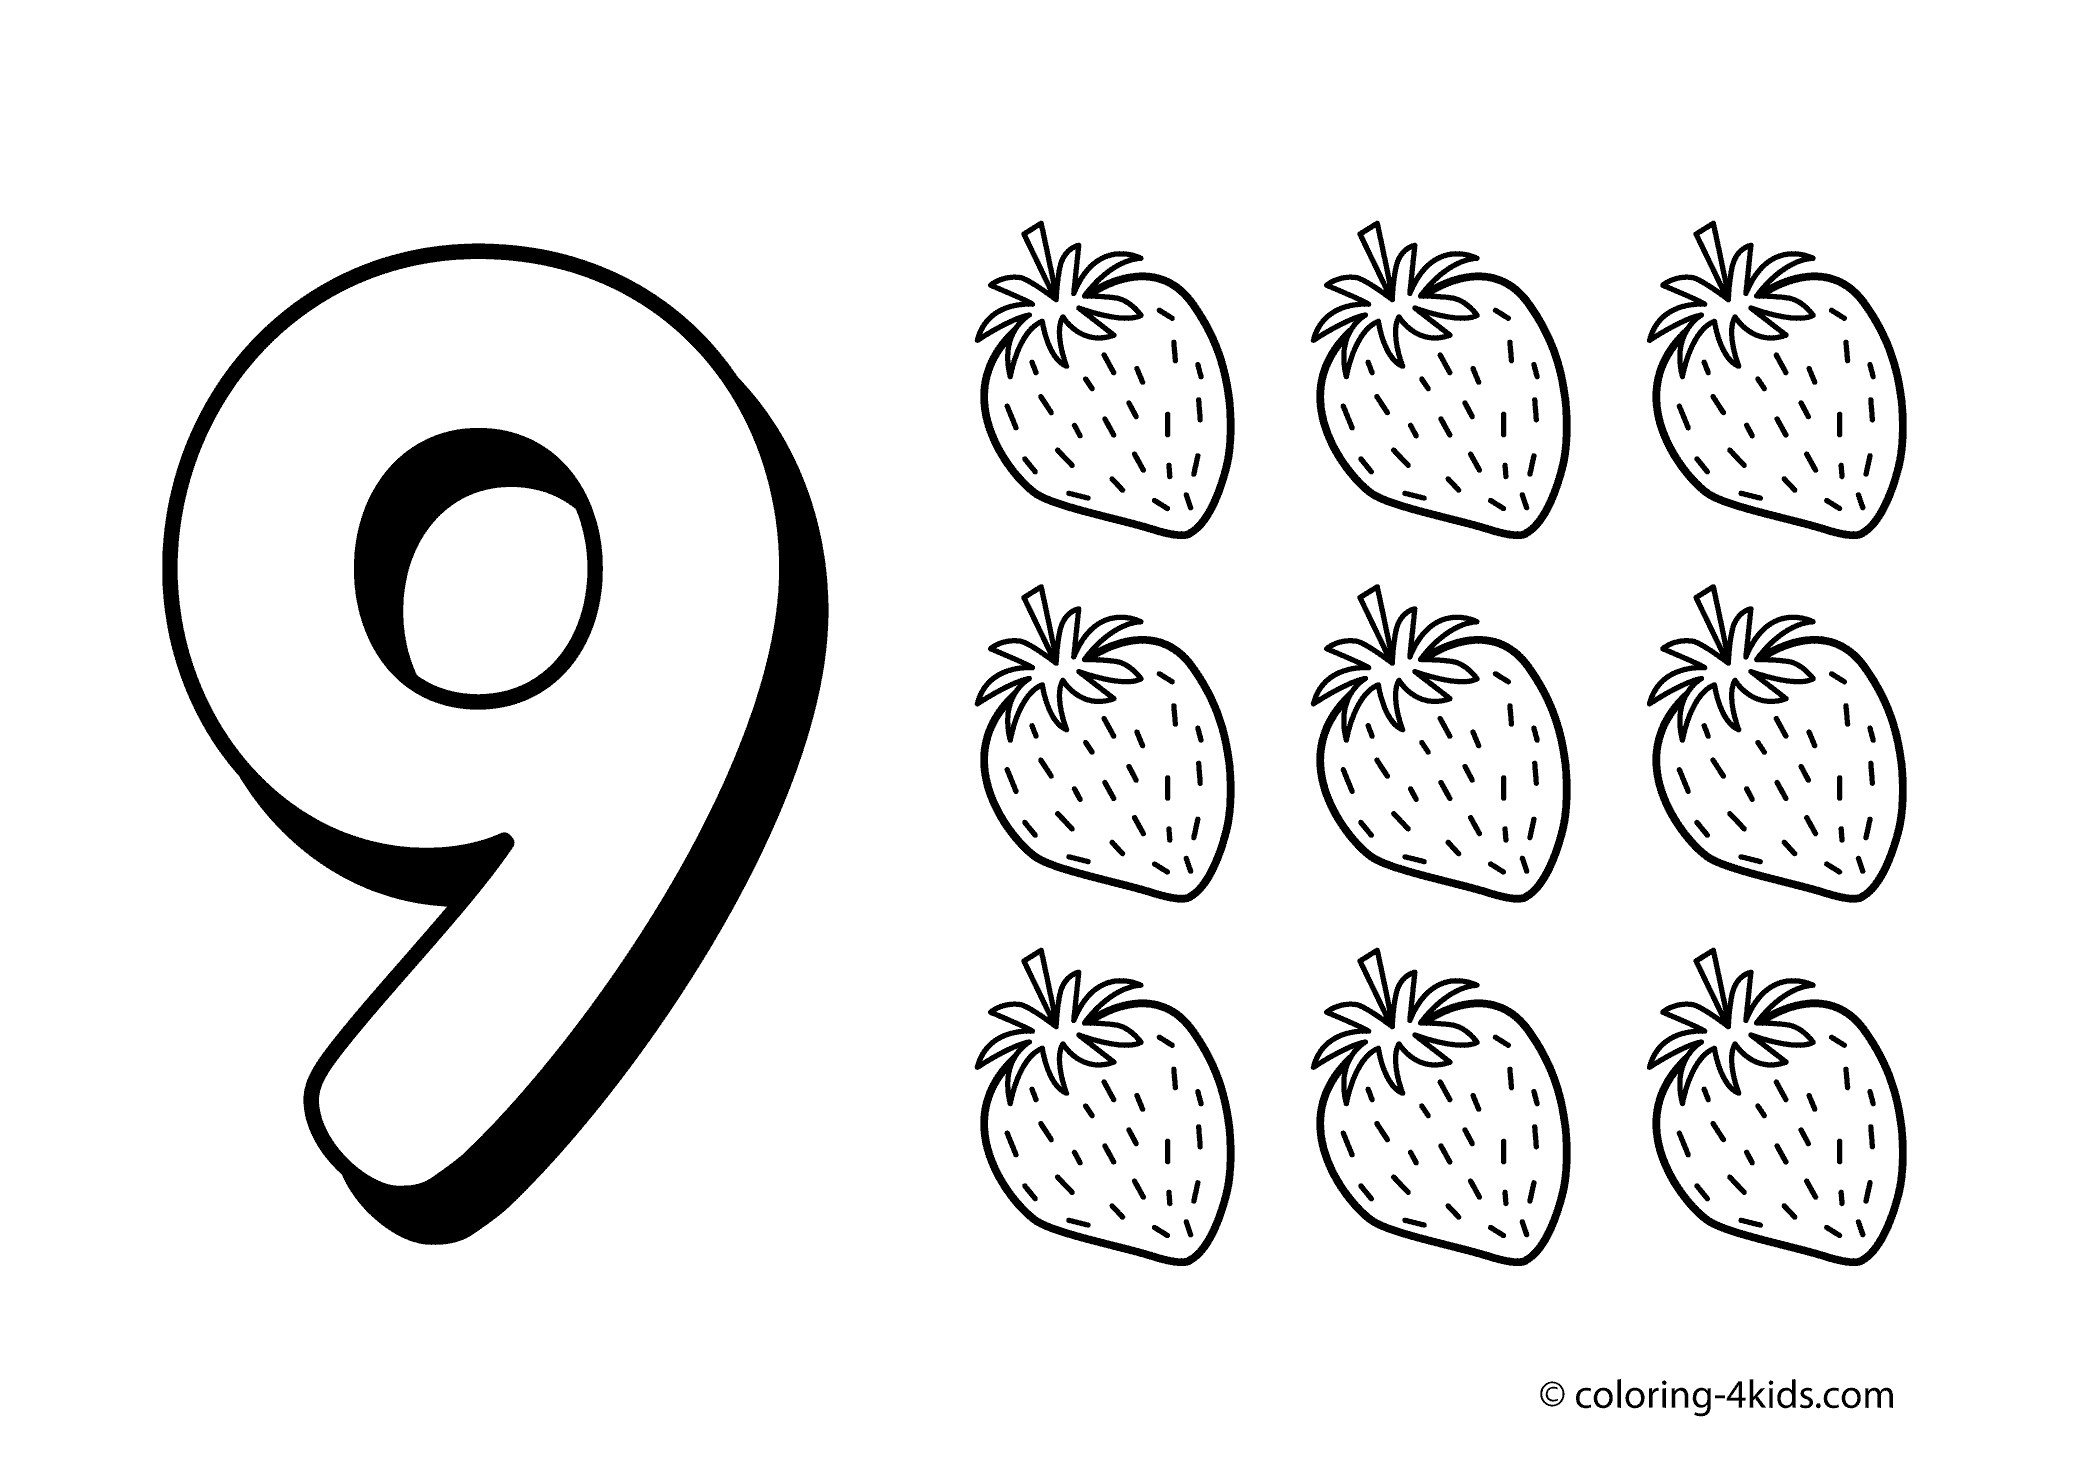 Preschool Number Coloring Pages Collection 5b - To print for your project